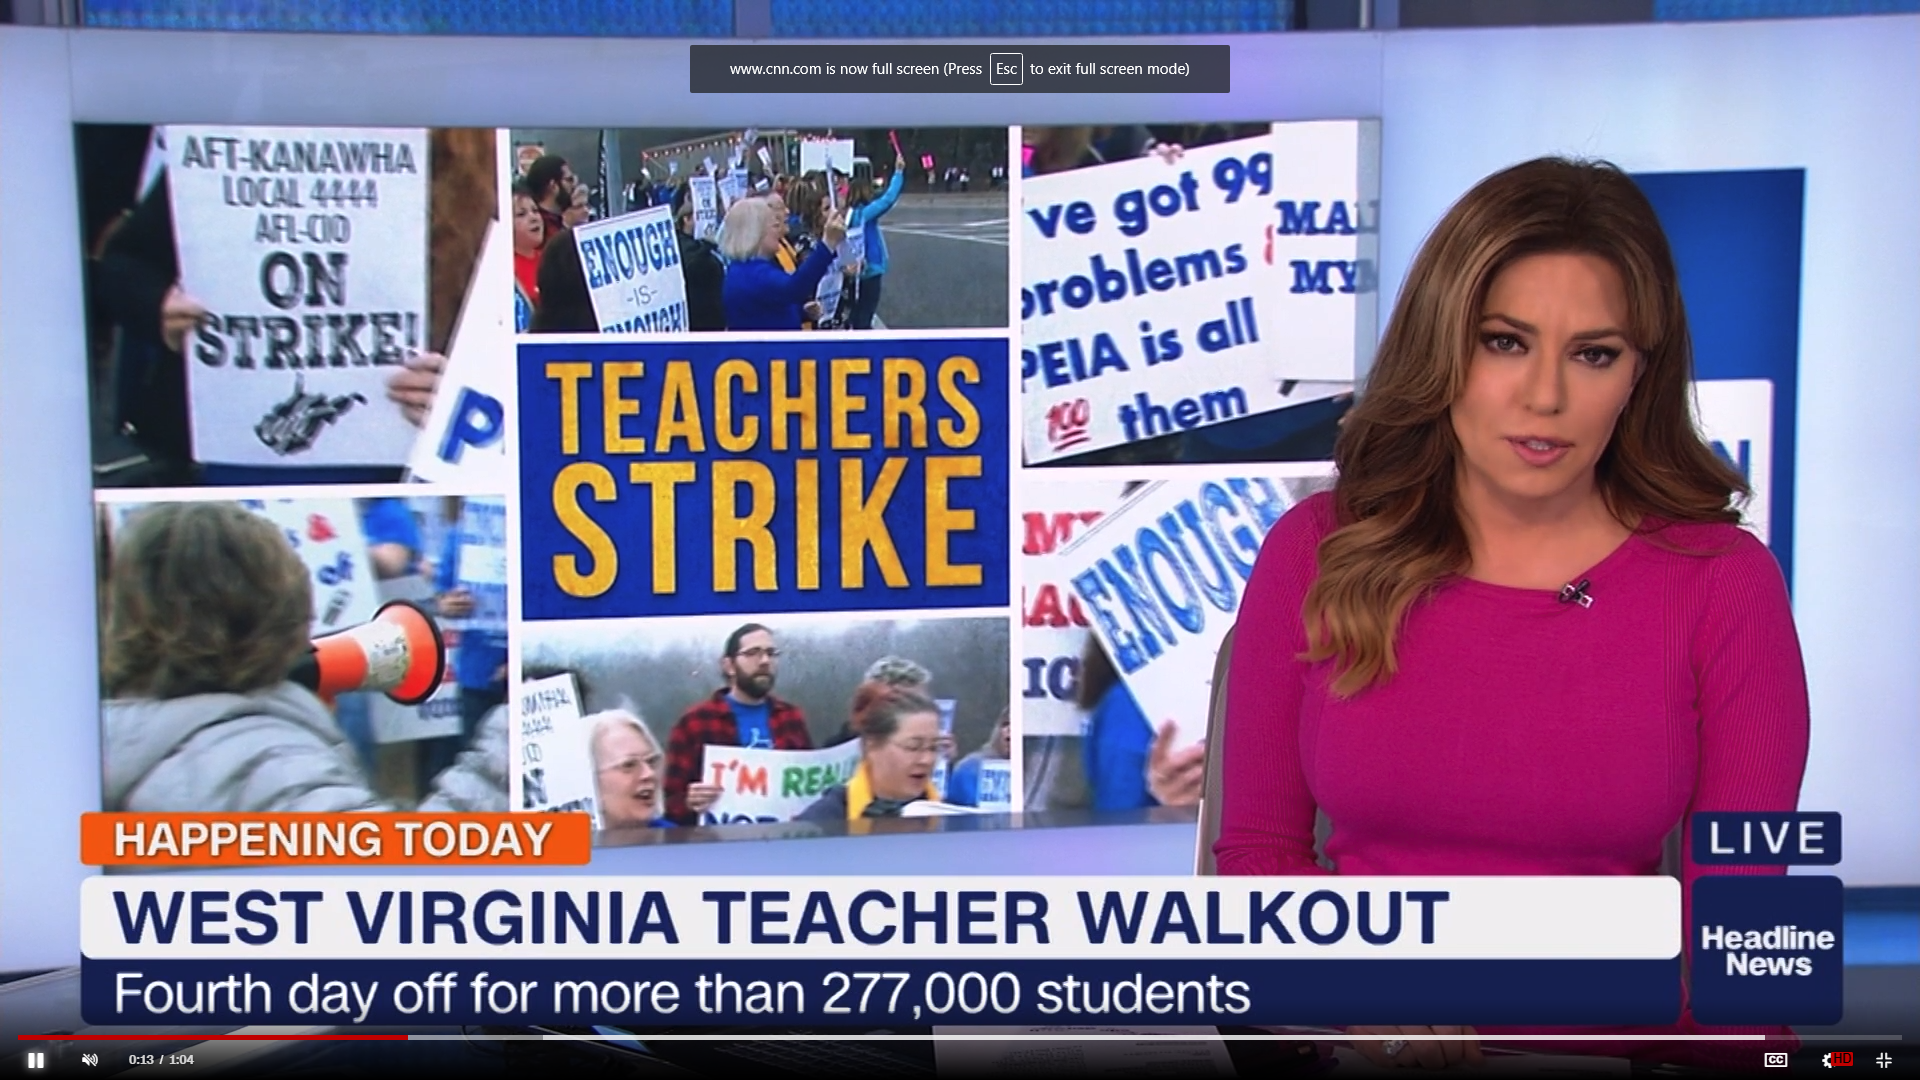 Headline News: West Virginia Teacher Walkout